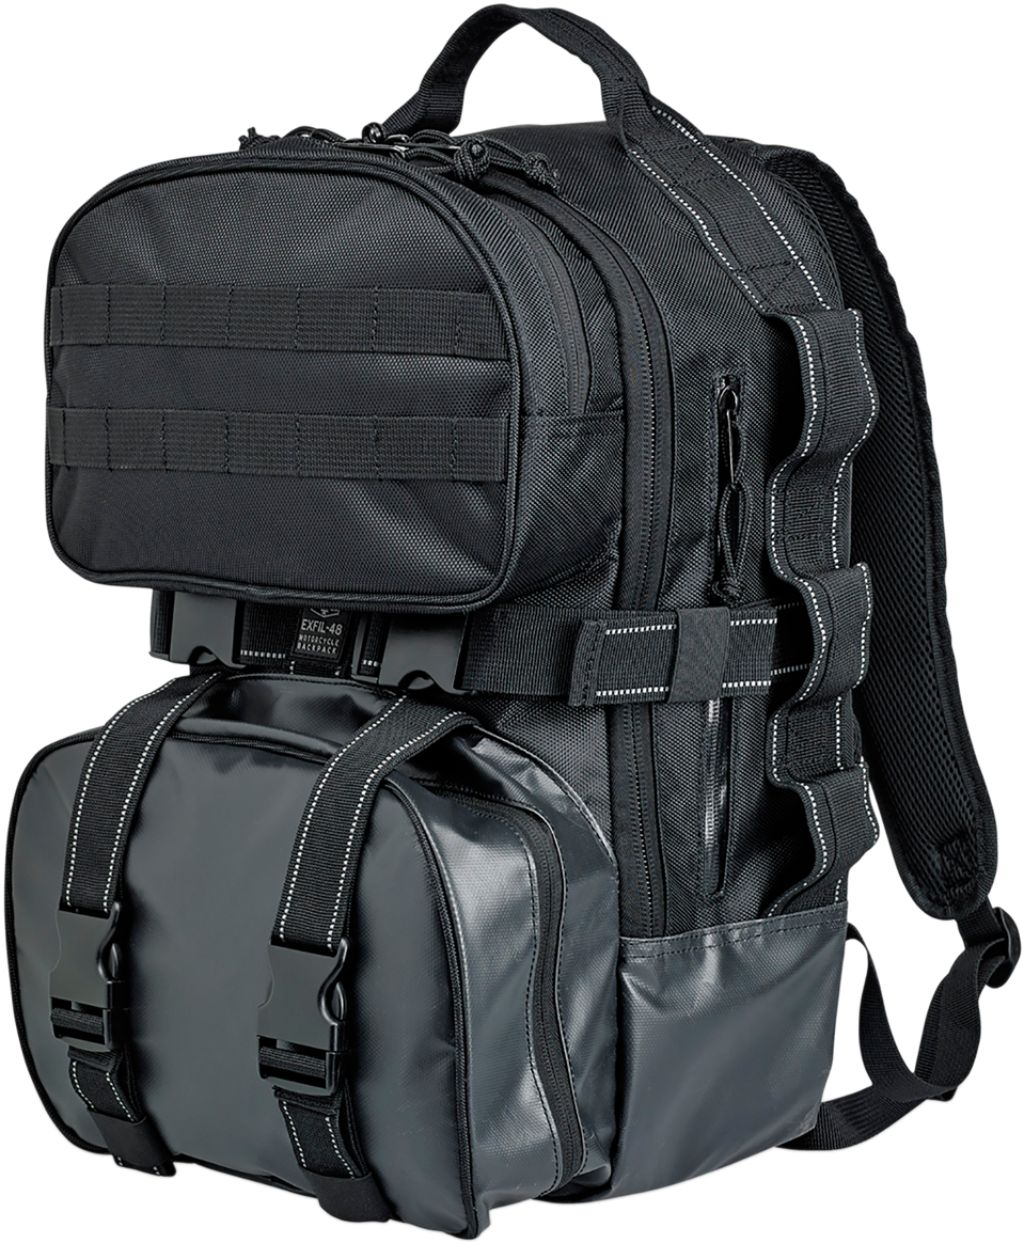 BILTWELL BACKPACK EXFIL 48 BLK Bag [3517-0450]